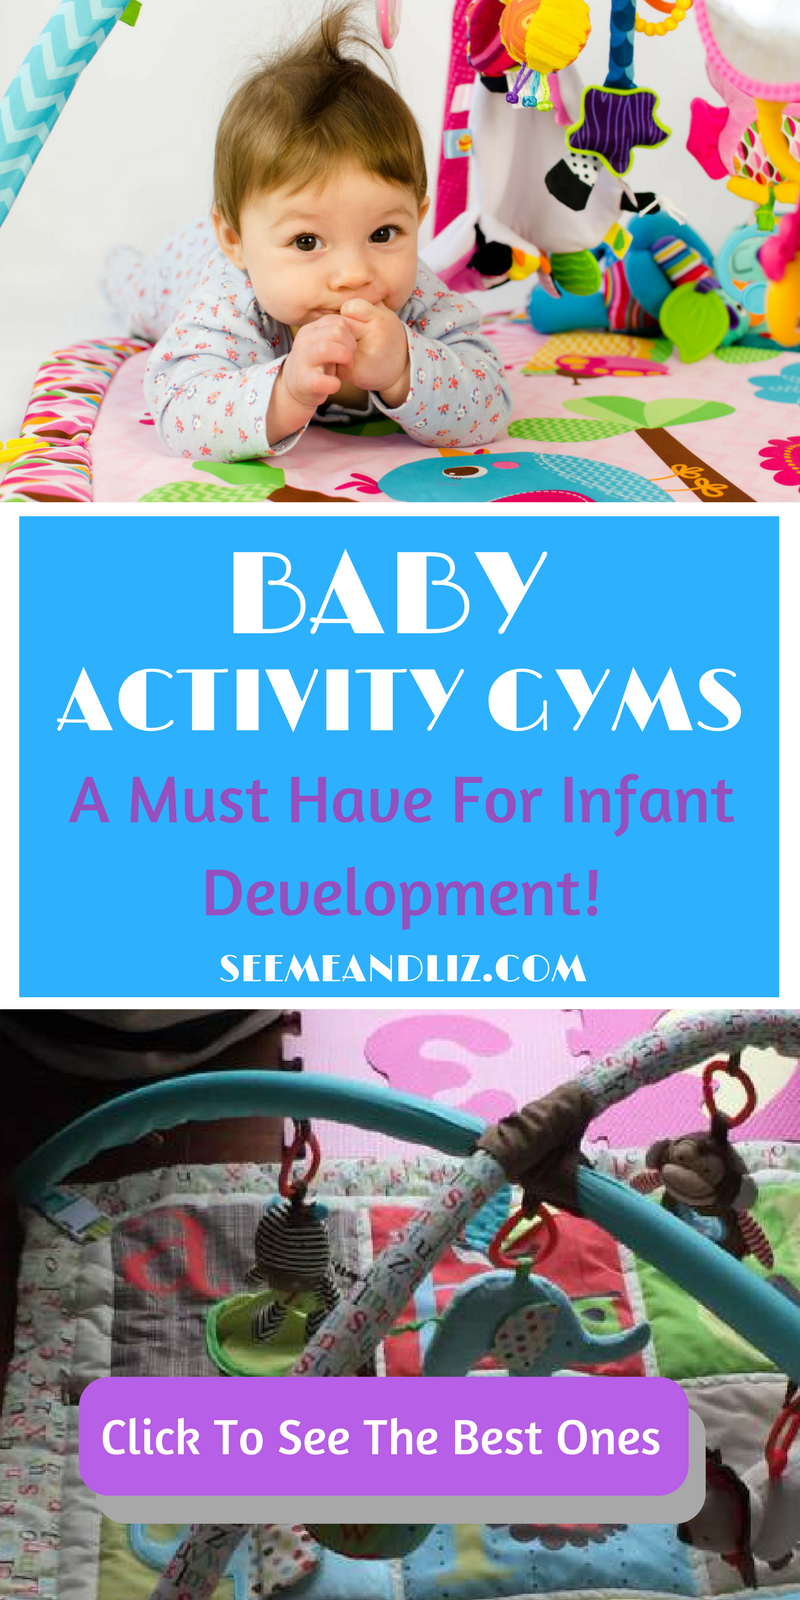 A baby activity gym is a must have for infant development. Click to learn how, plus which ones are best! | #babygym | #infantdevelopment